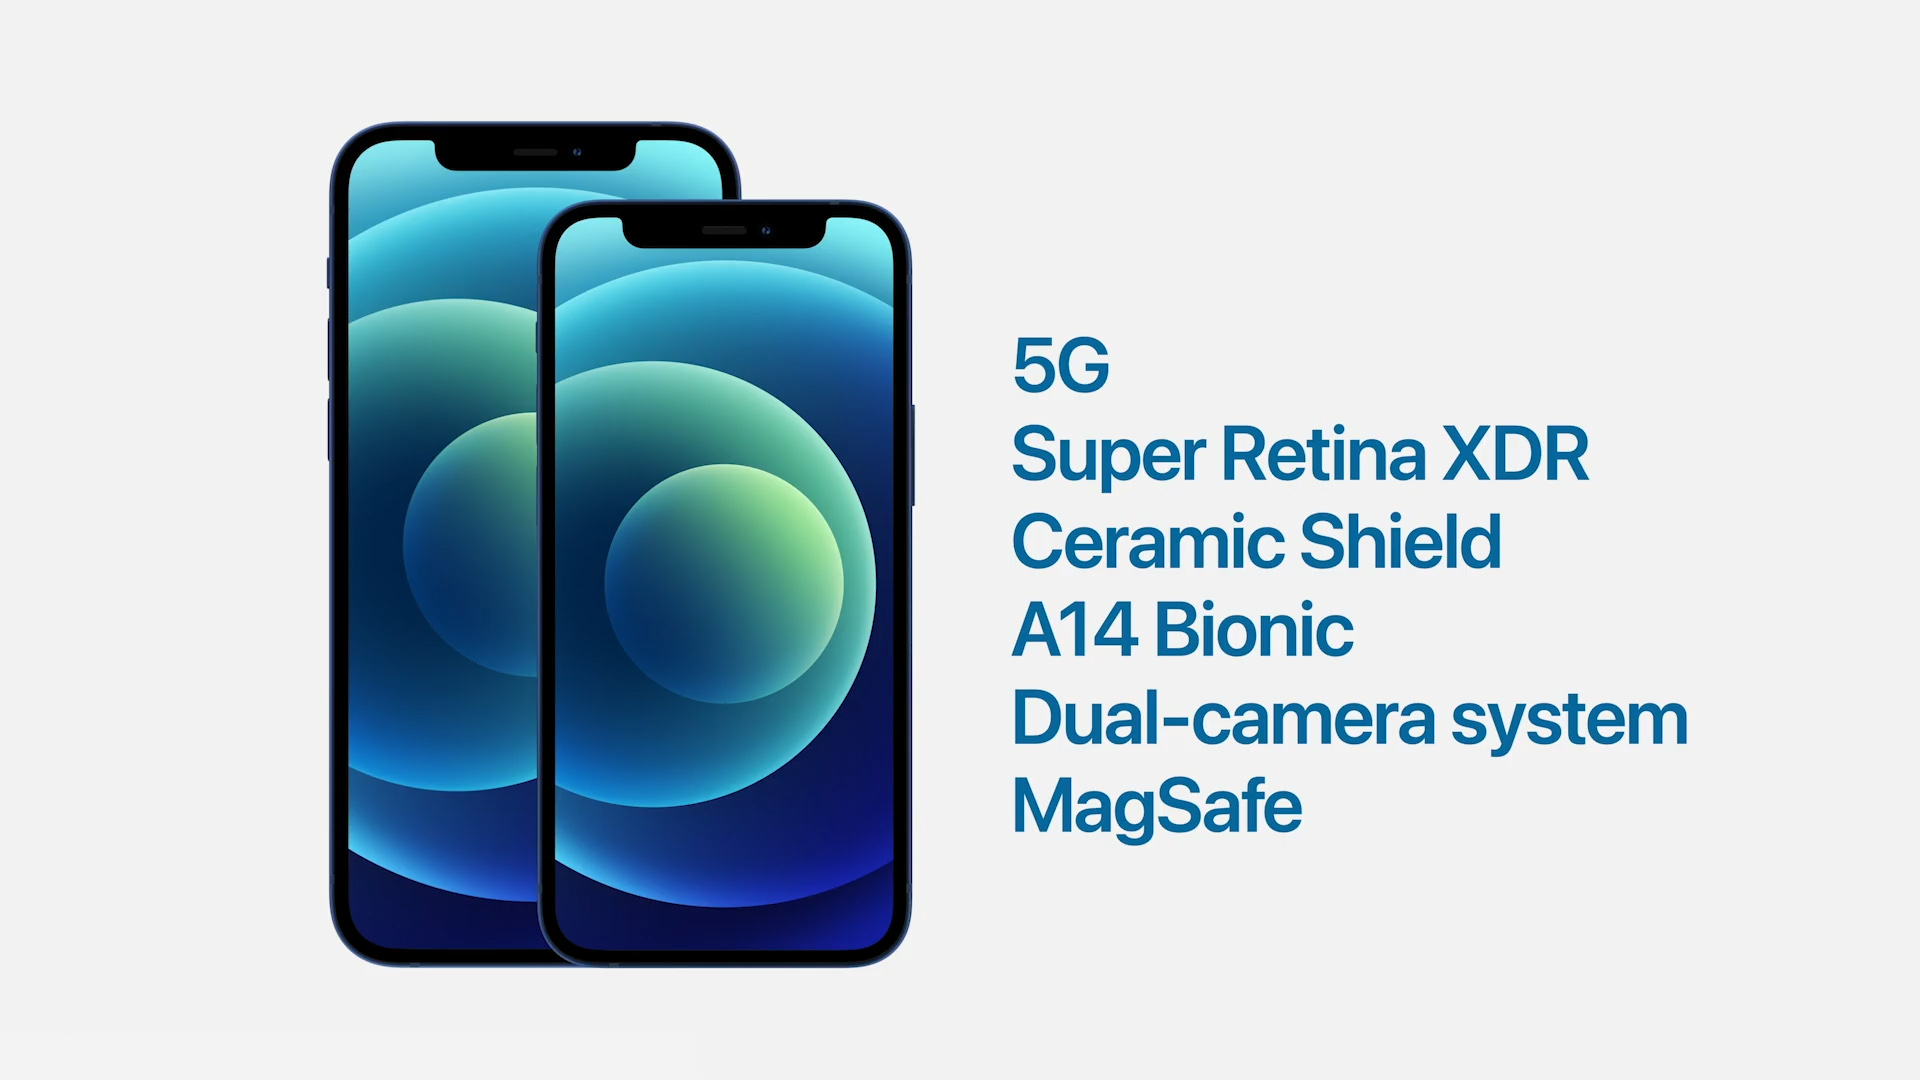 Which iPhone models support 5g